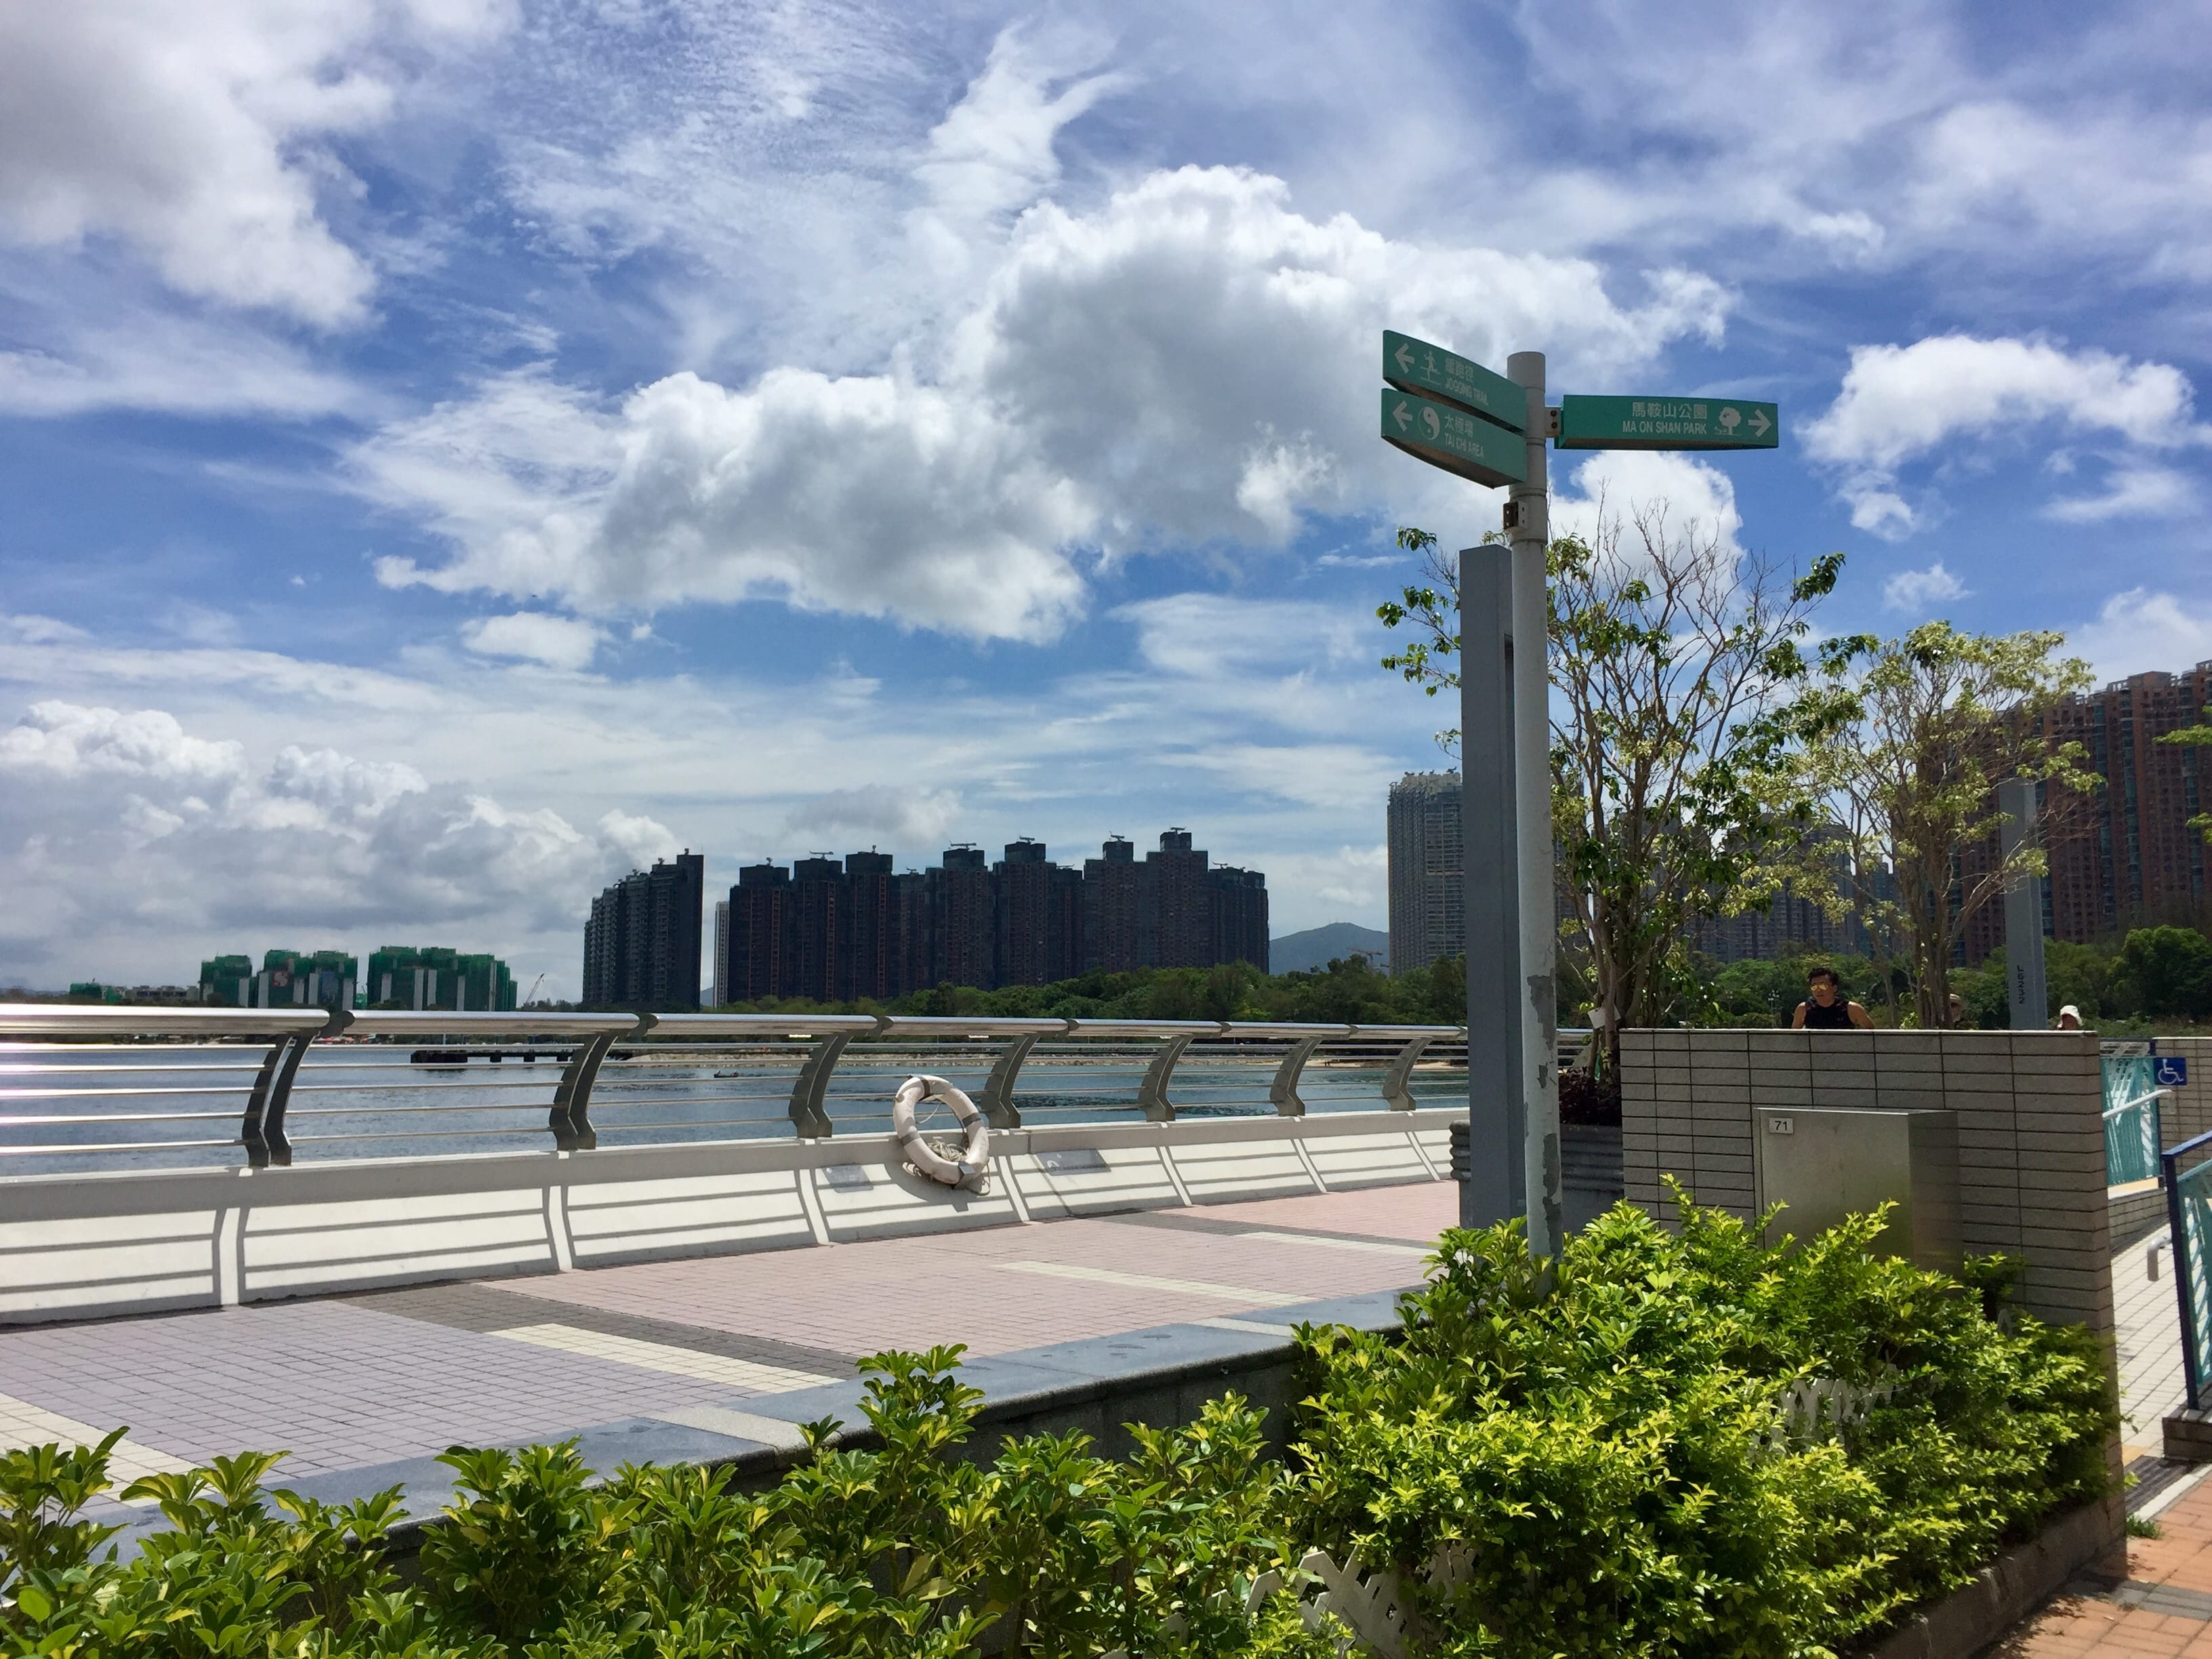 End of the Ma On Shan Promenade with high rise apartment in the background